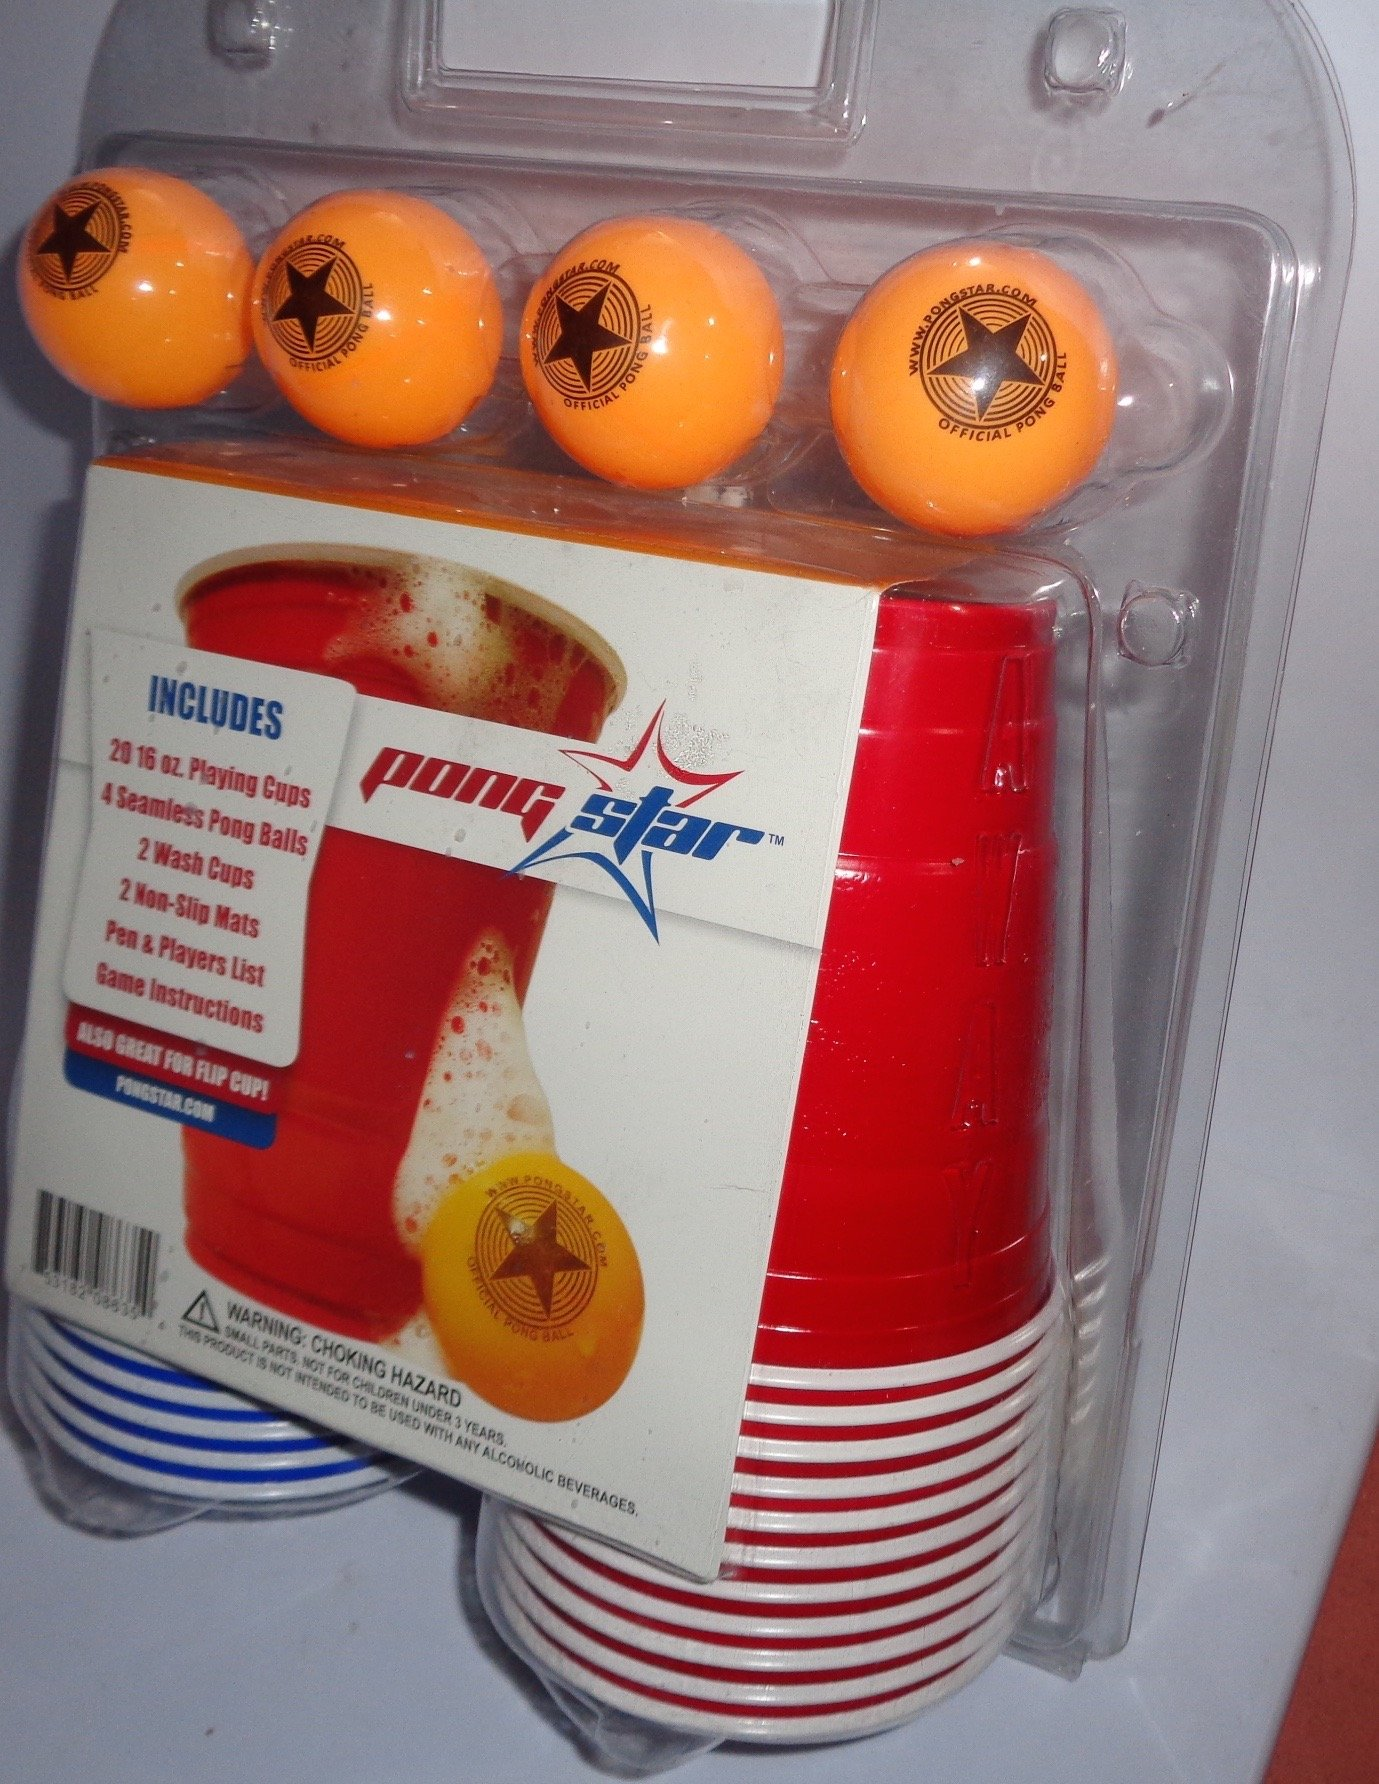 Pong Star Beer Cup Kit by Pong Star